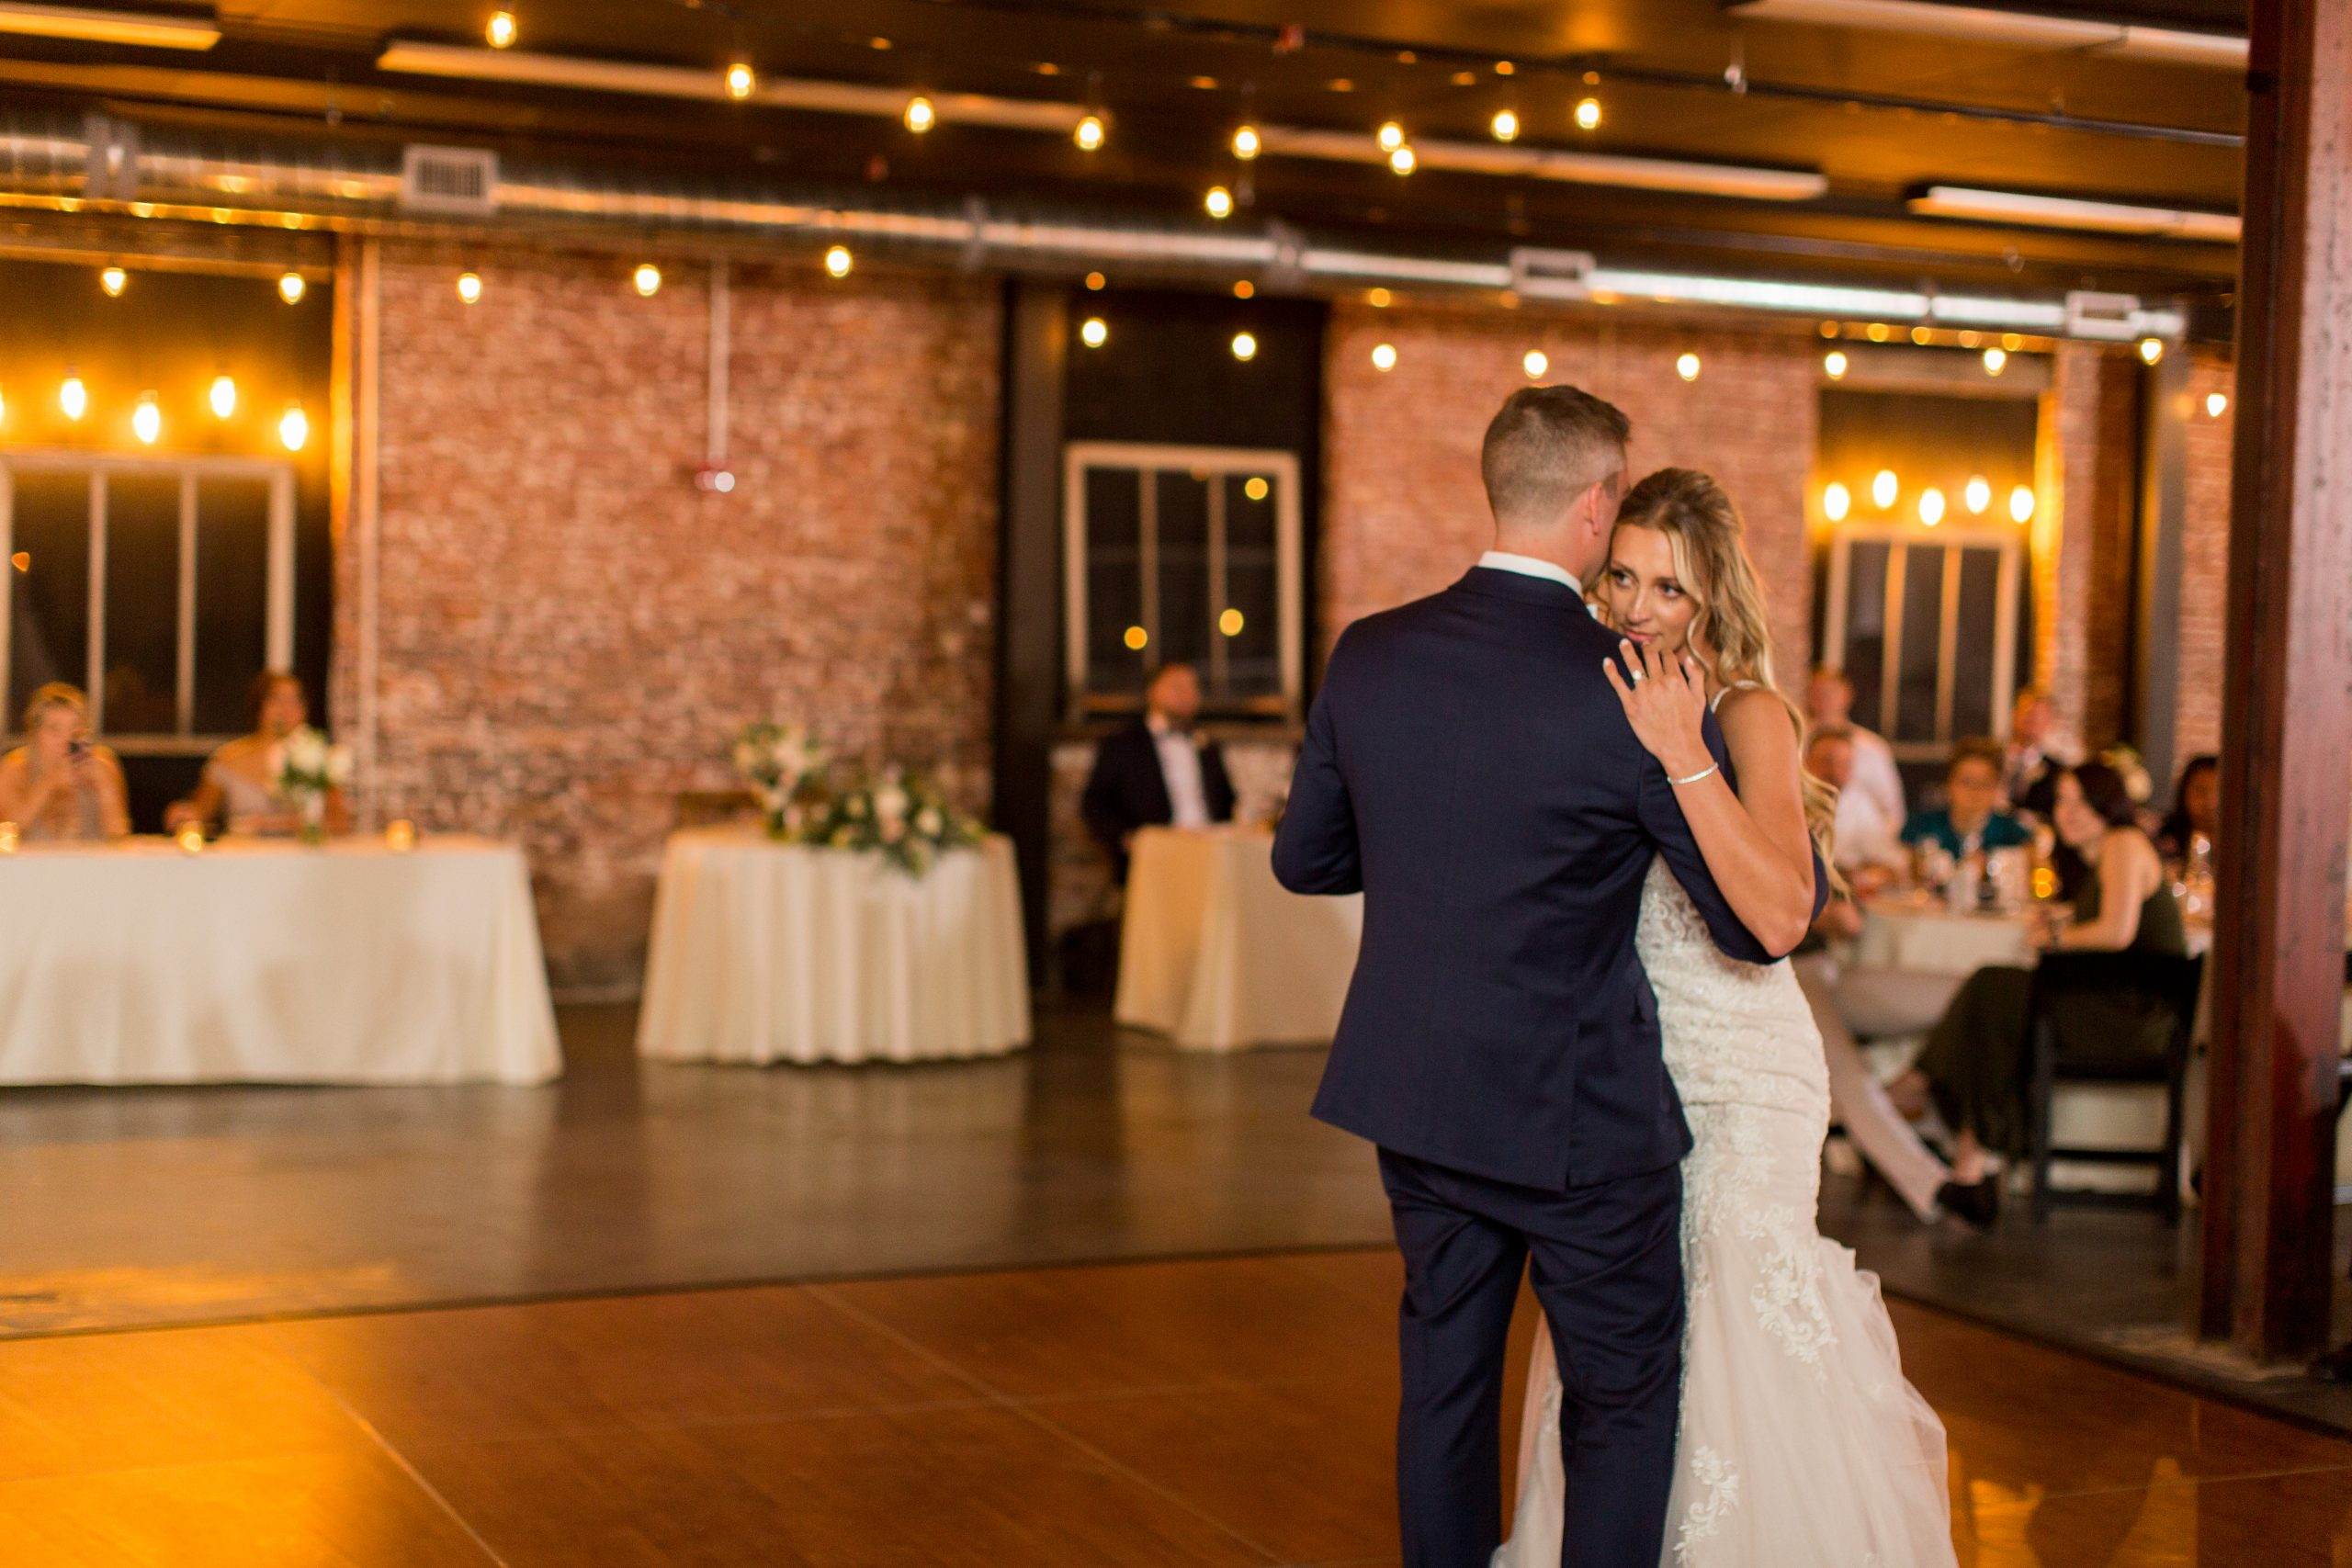 Macy and Ryan's first dance as husband and wife at The Venues Toledo.